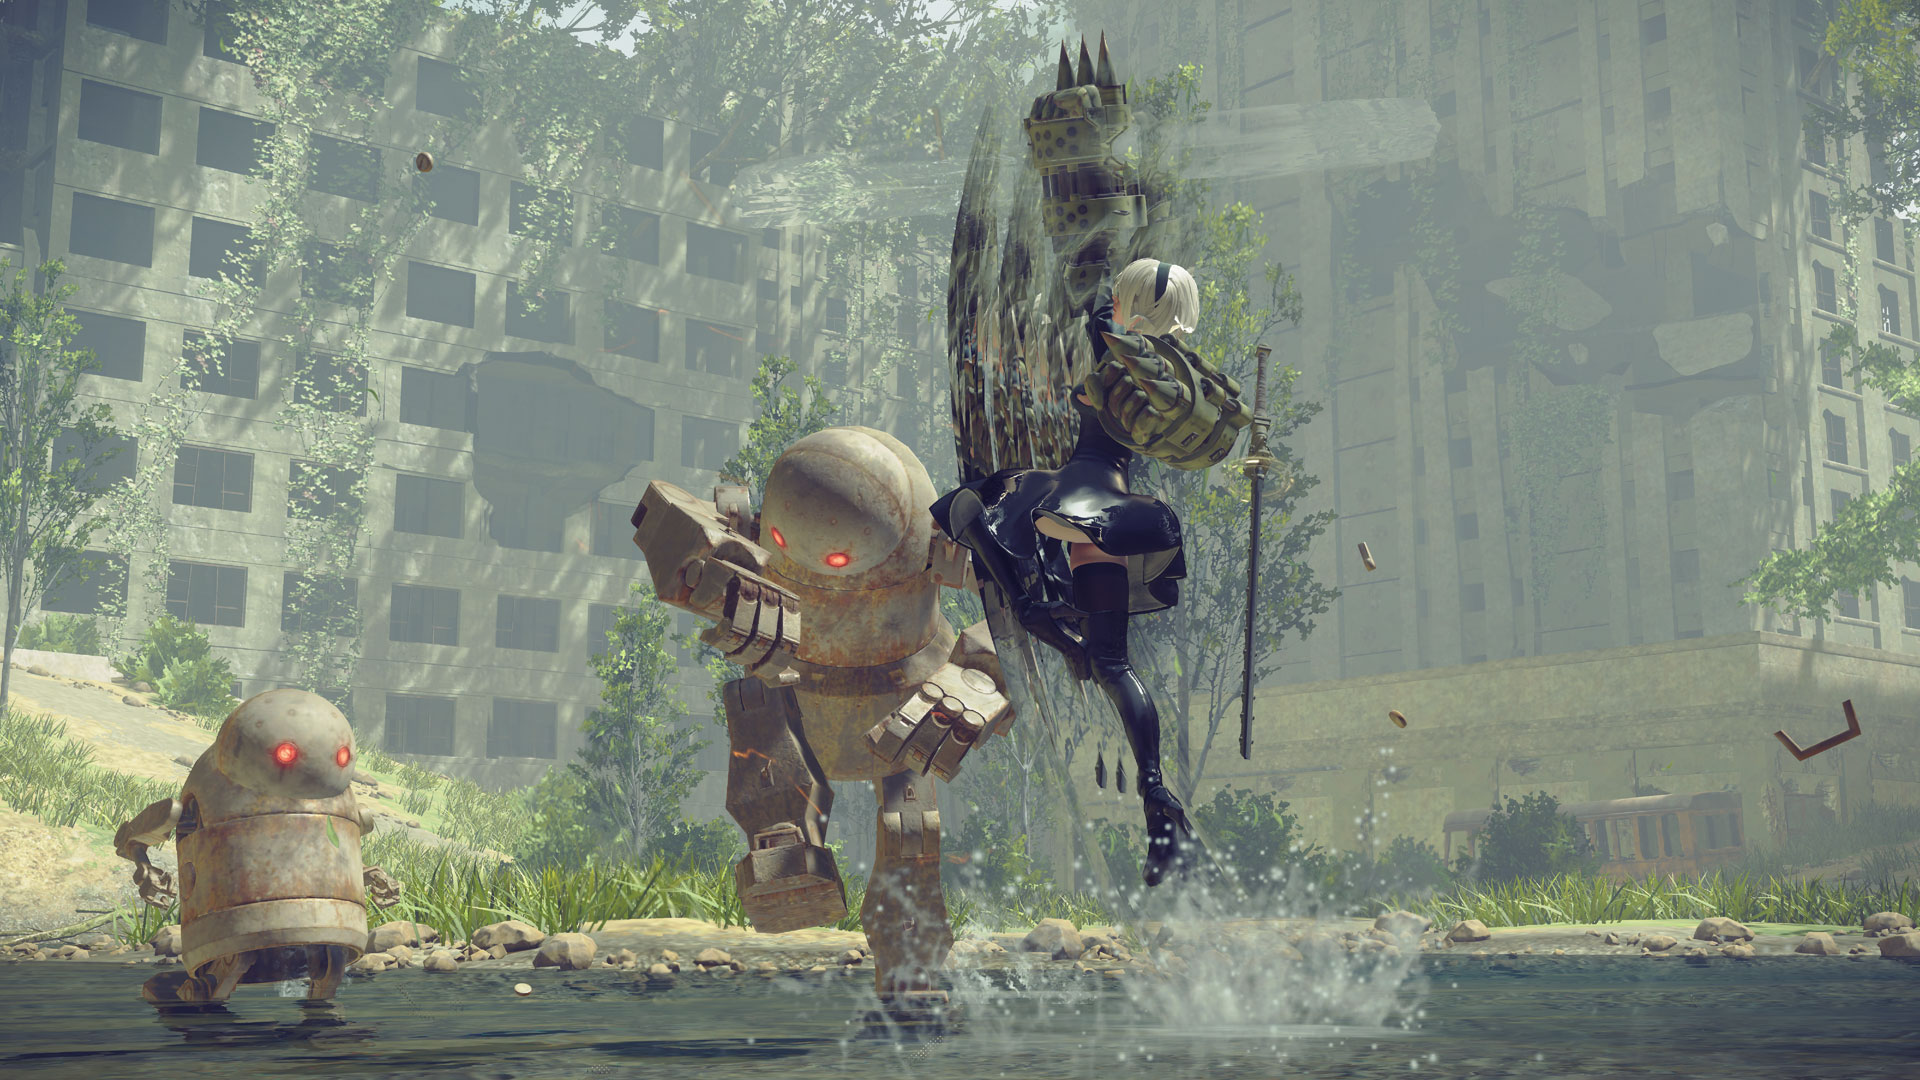 NieR: Automata (Steam Key) + Bonus